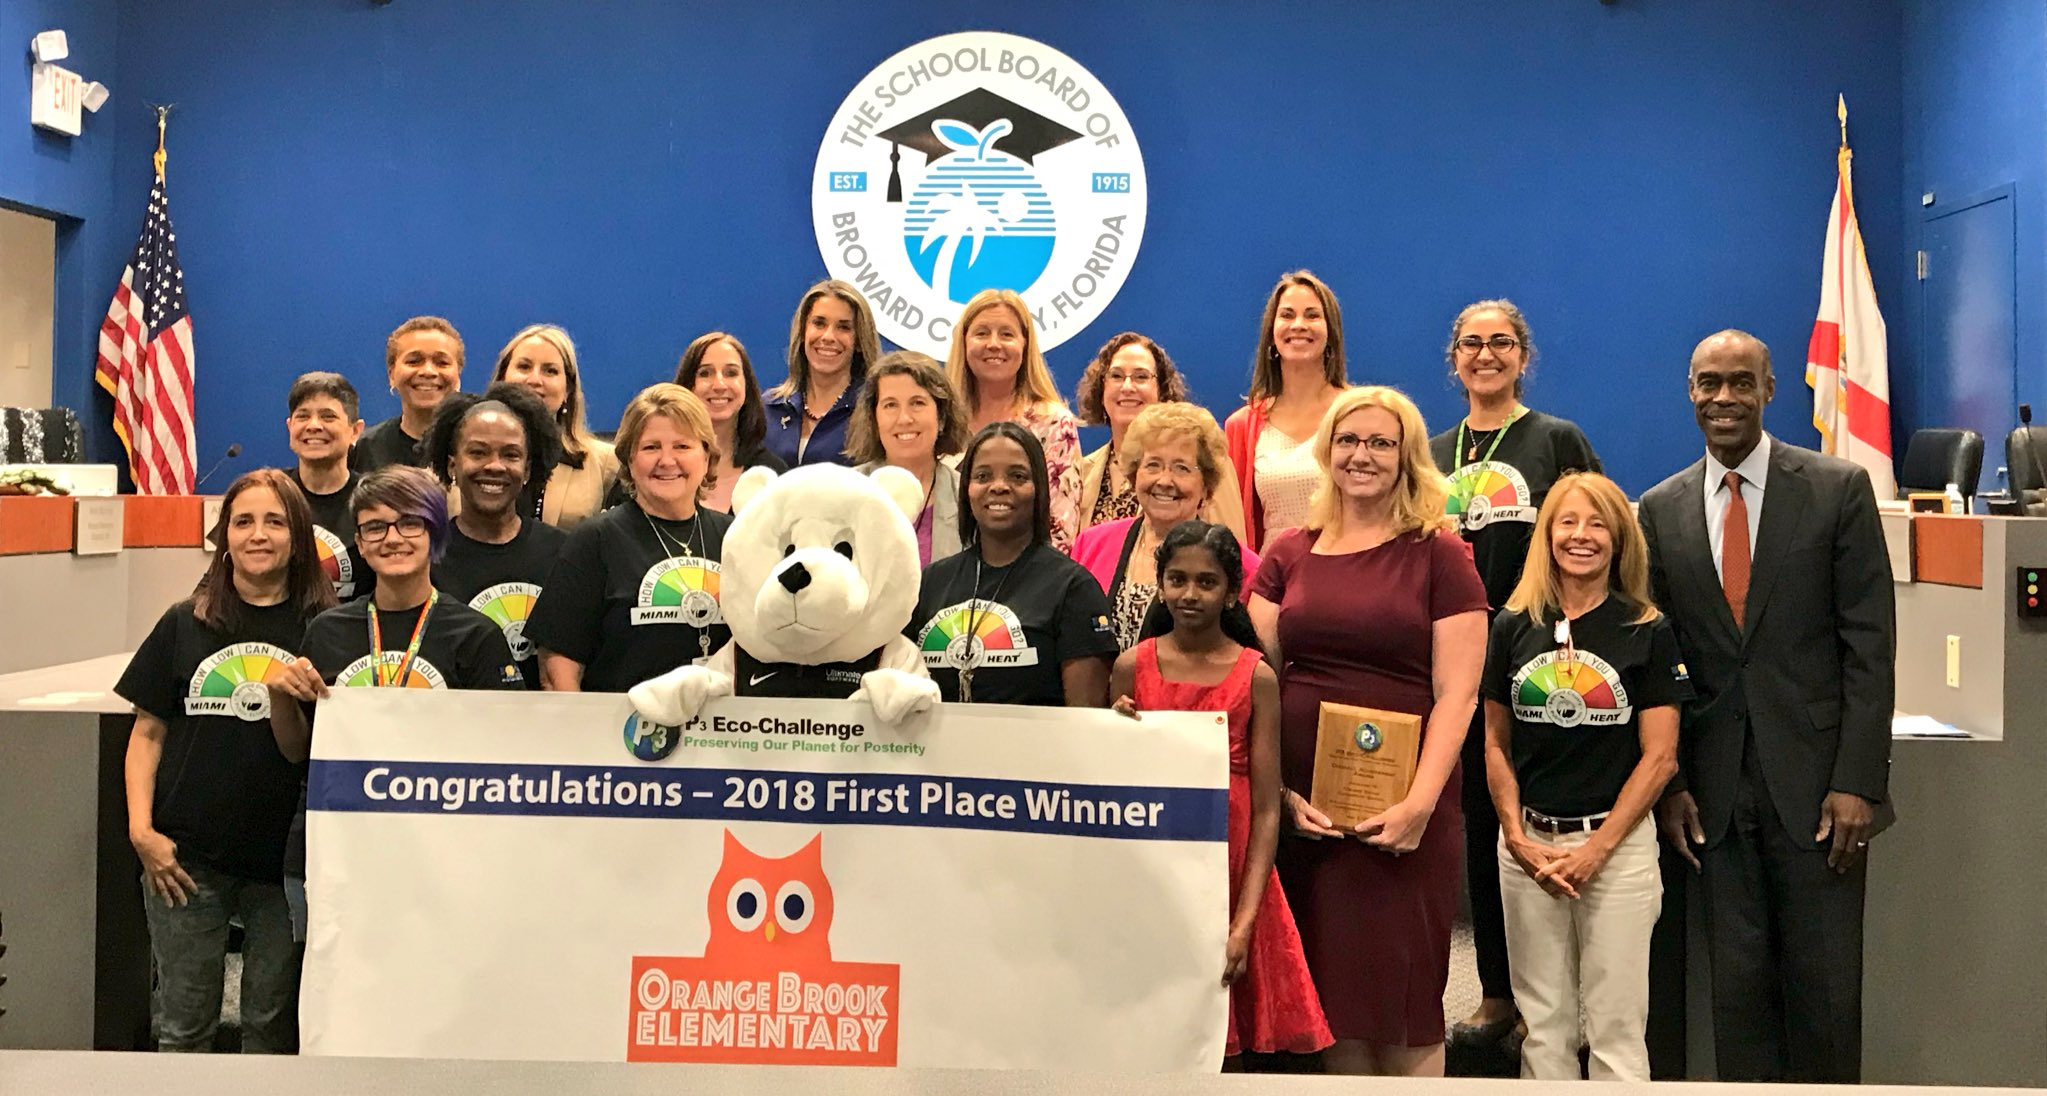 Orange Brook Elementary staff and students being presented with their winning P3 banner at a School Board meeting